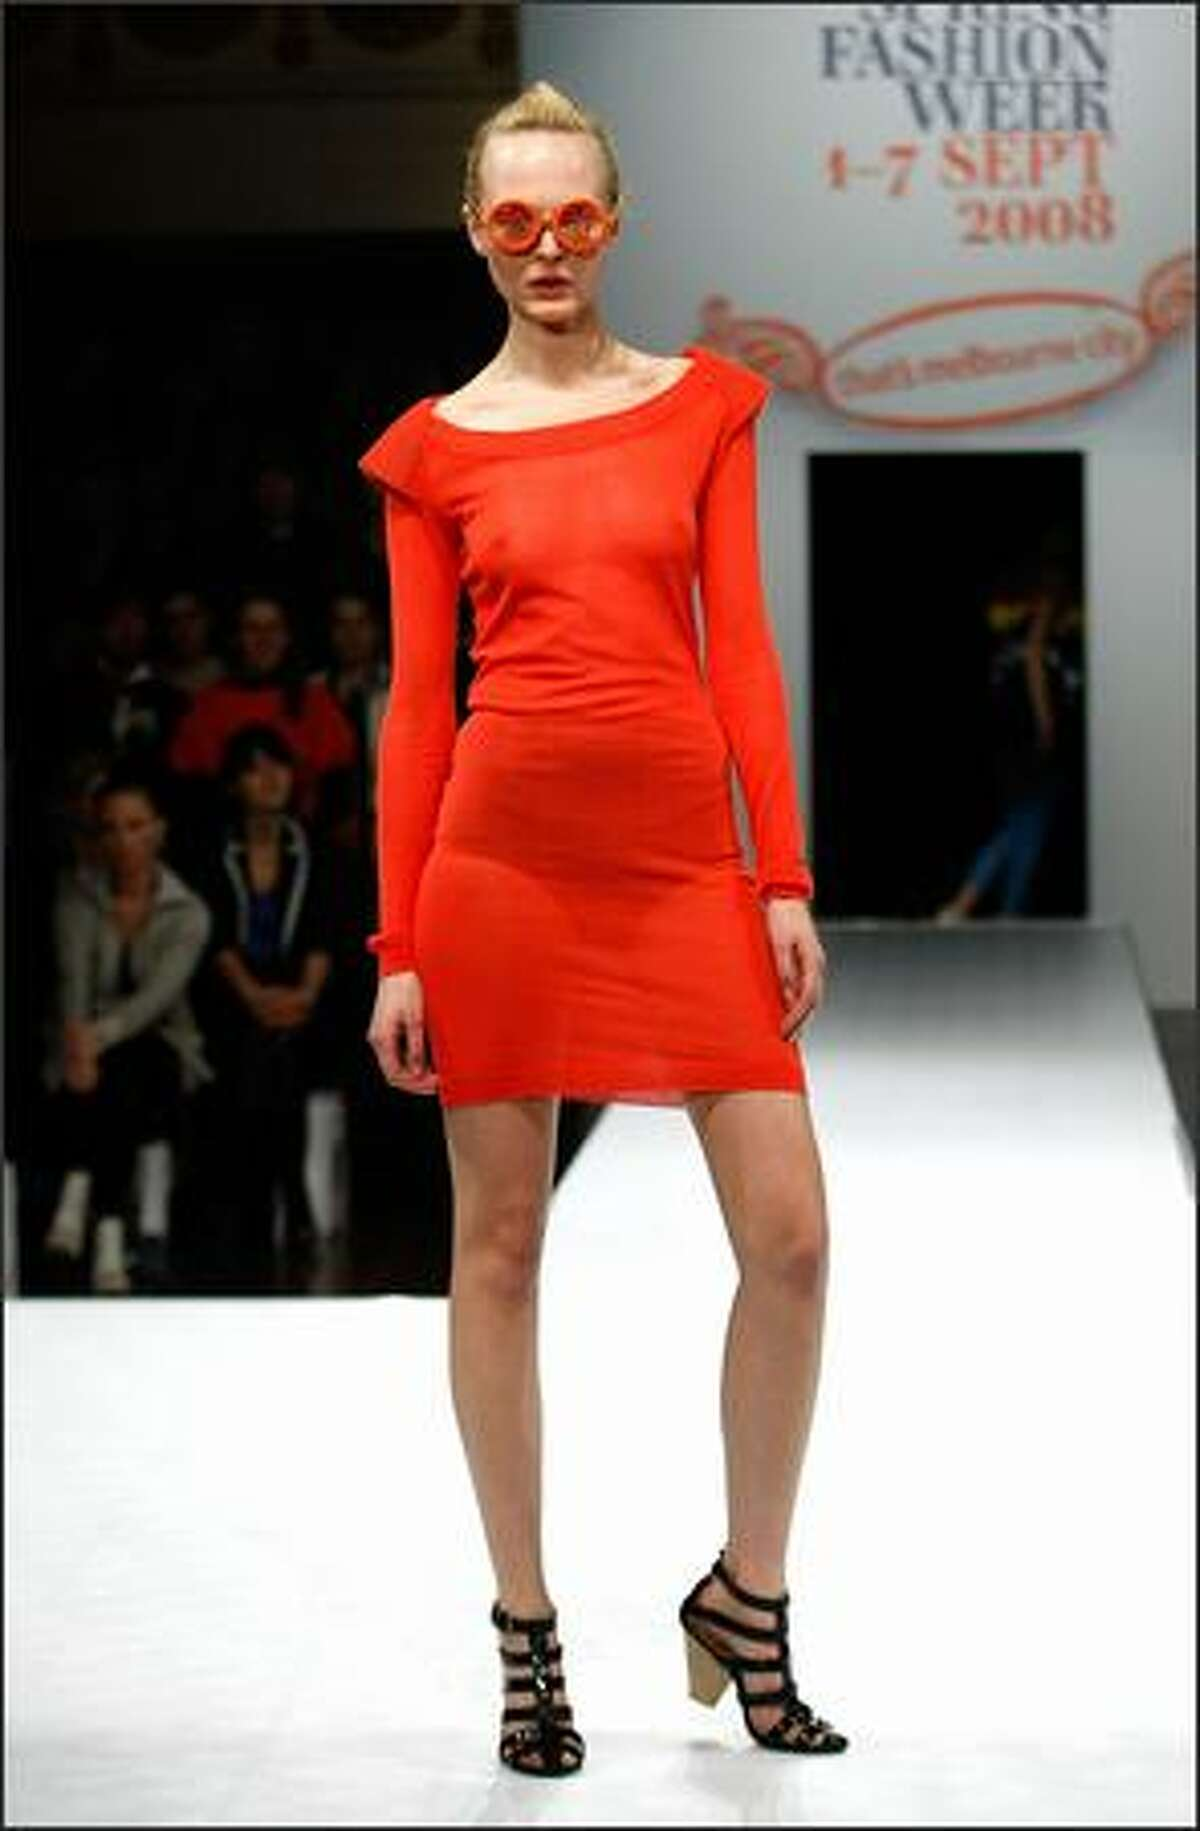 A model showcases designs by TV as part of the Out of The Shadows catwalk show on the second day of Melbourne Spring Fashion Week 2008, at Melbourne Town Hall on Wednesday in Melbourne, Australia.